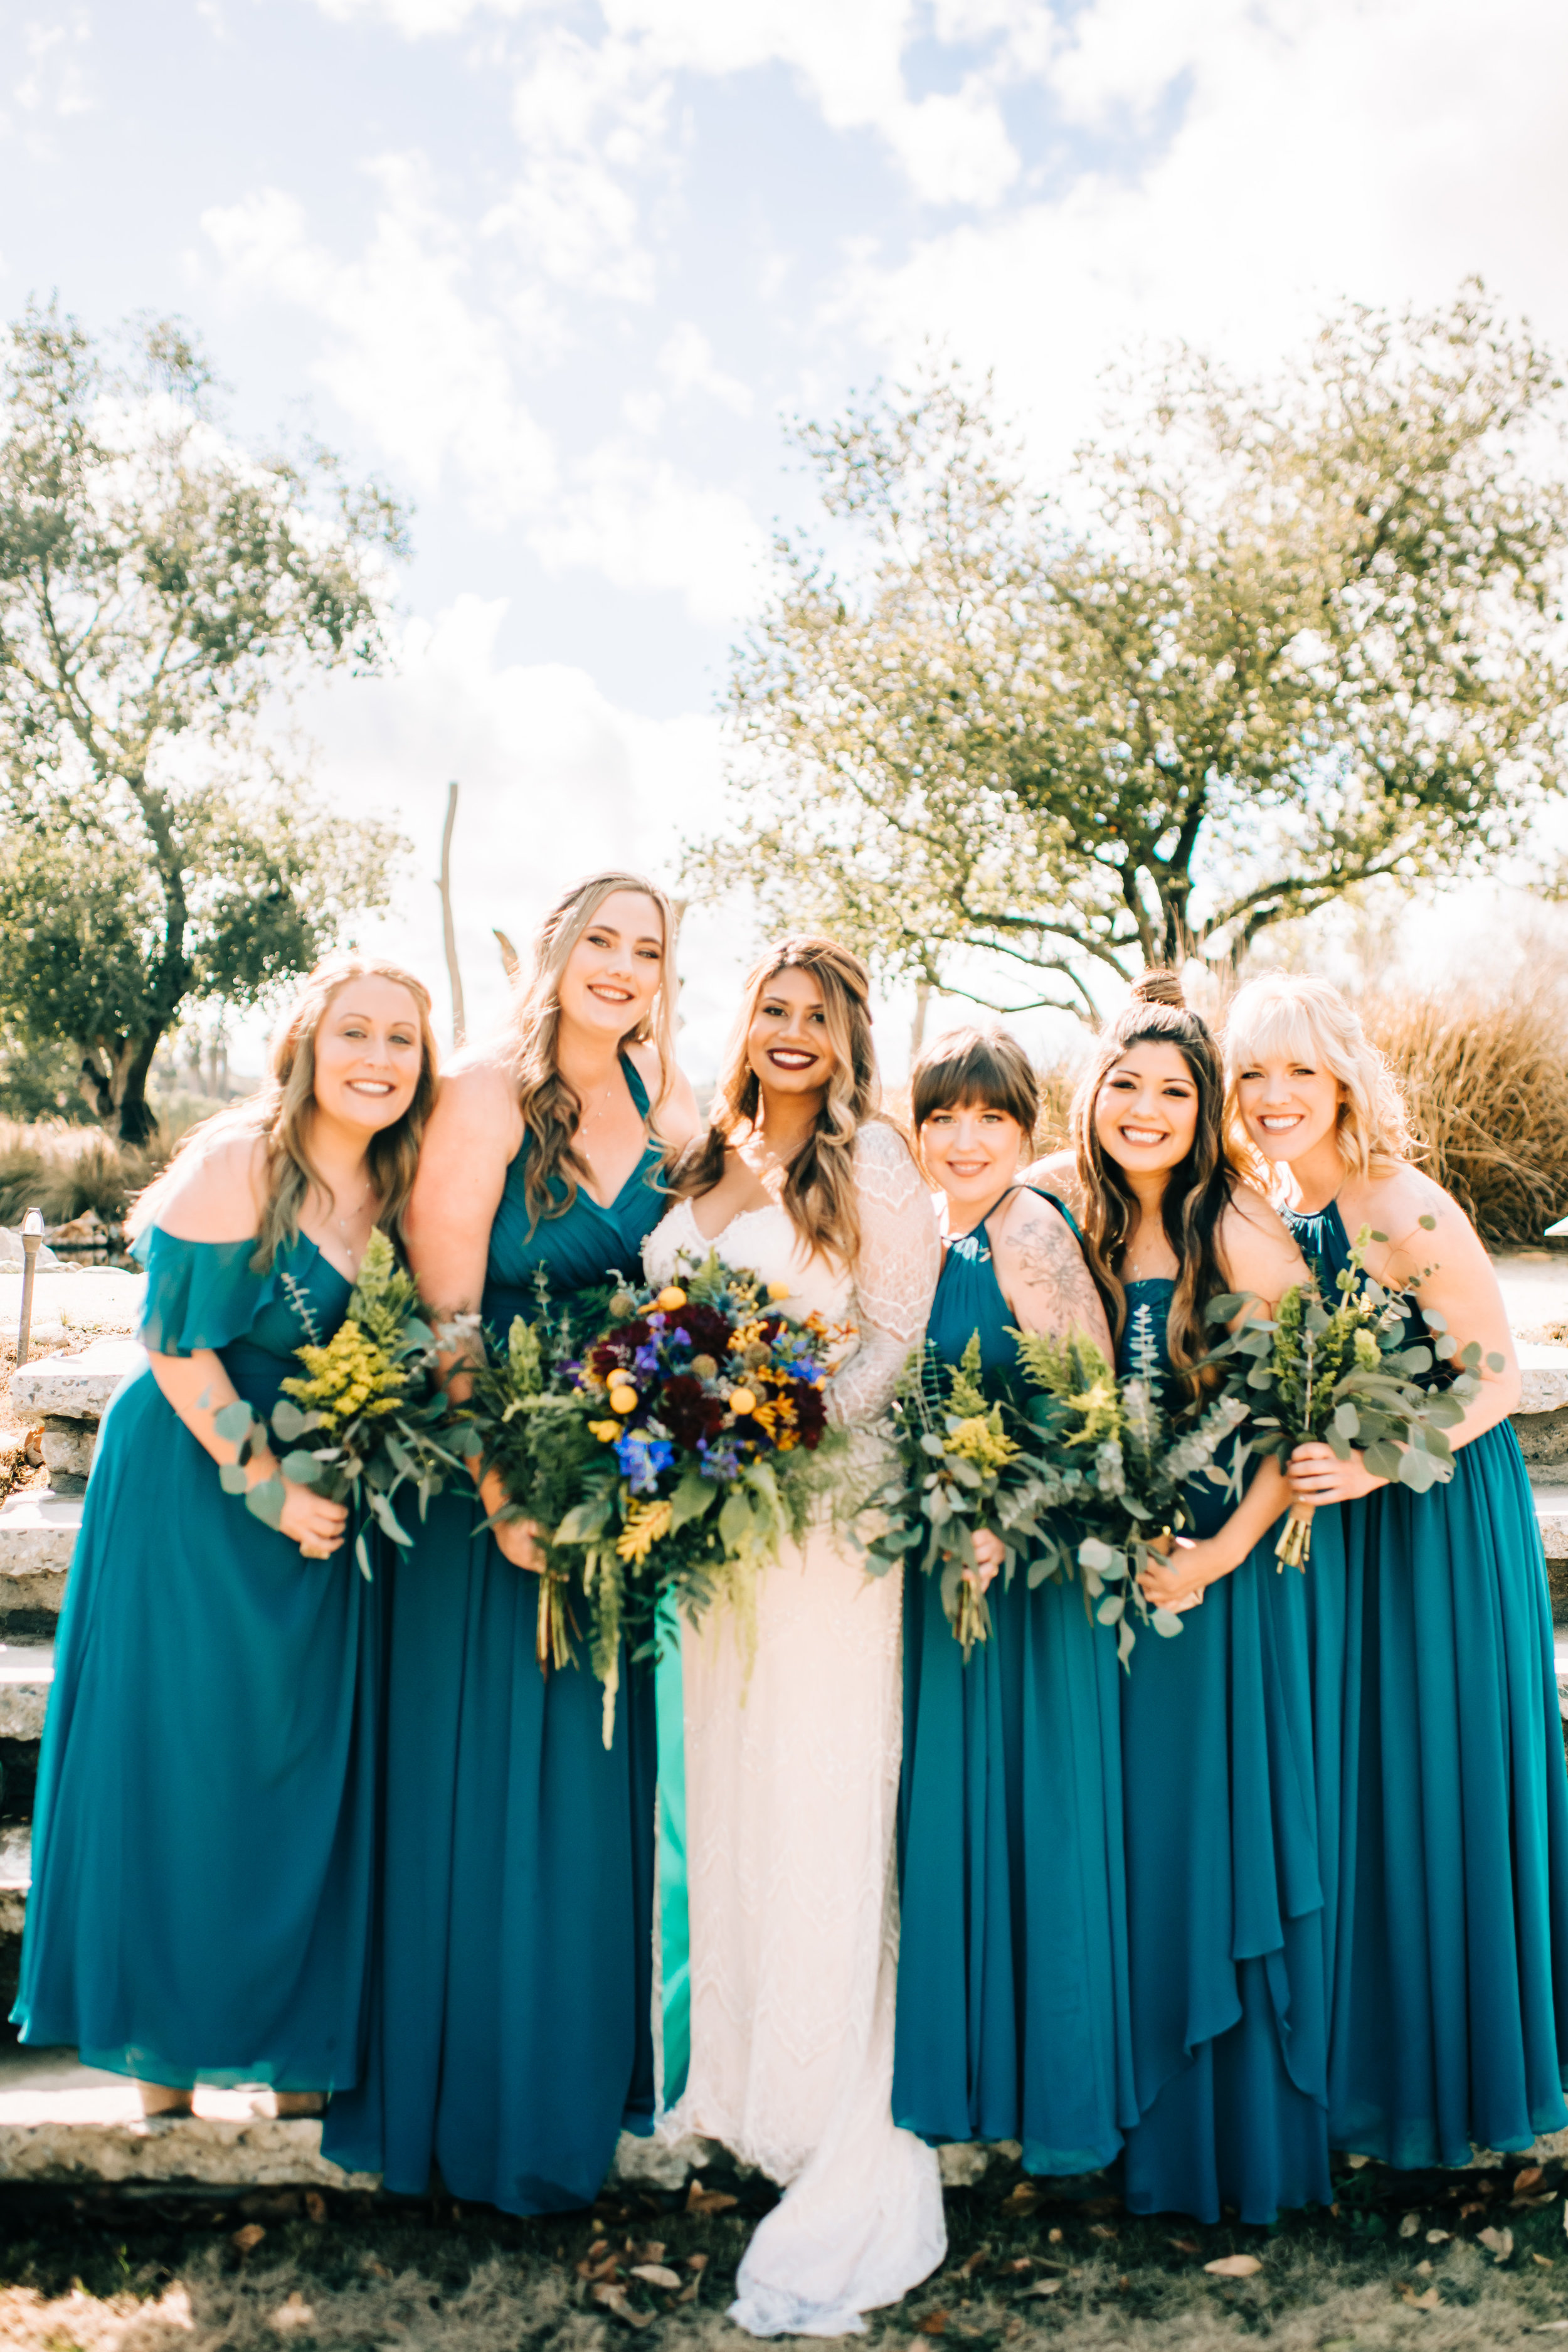 bay area nontraditional wedding photographer southern california boho wedding love light magic san francisco oakland northern california-139.jpg